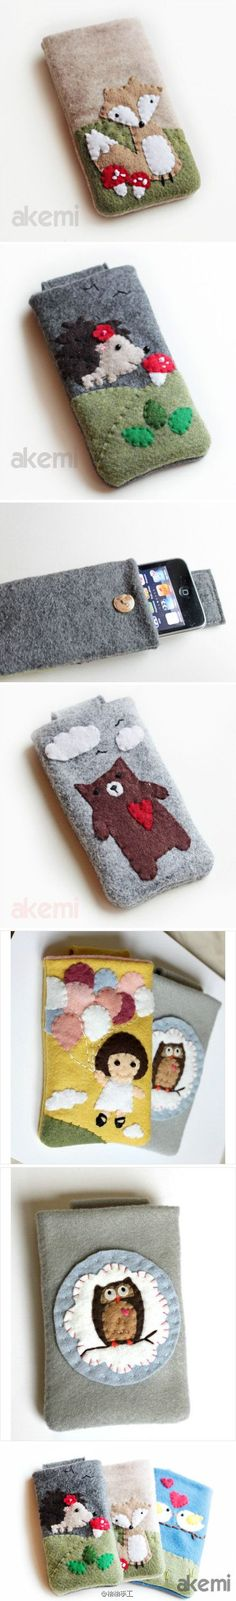 Cute felt patch iphone sets: